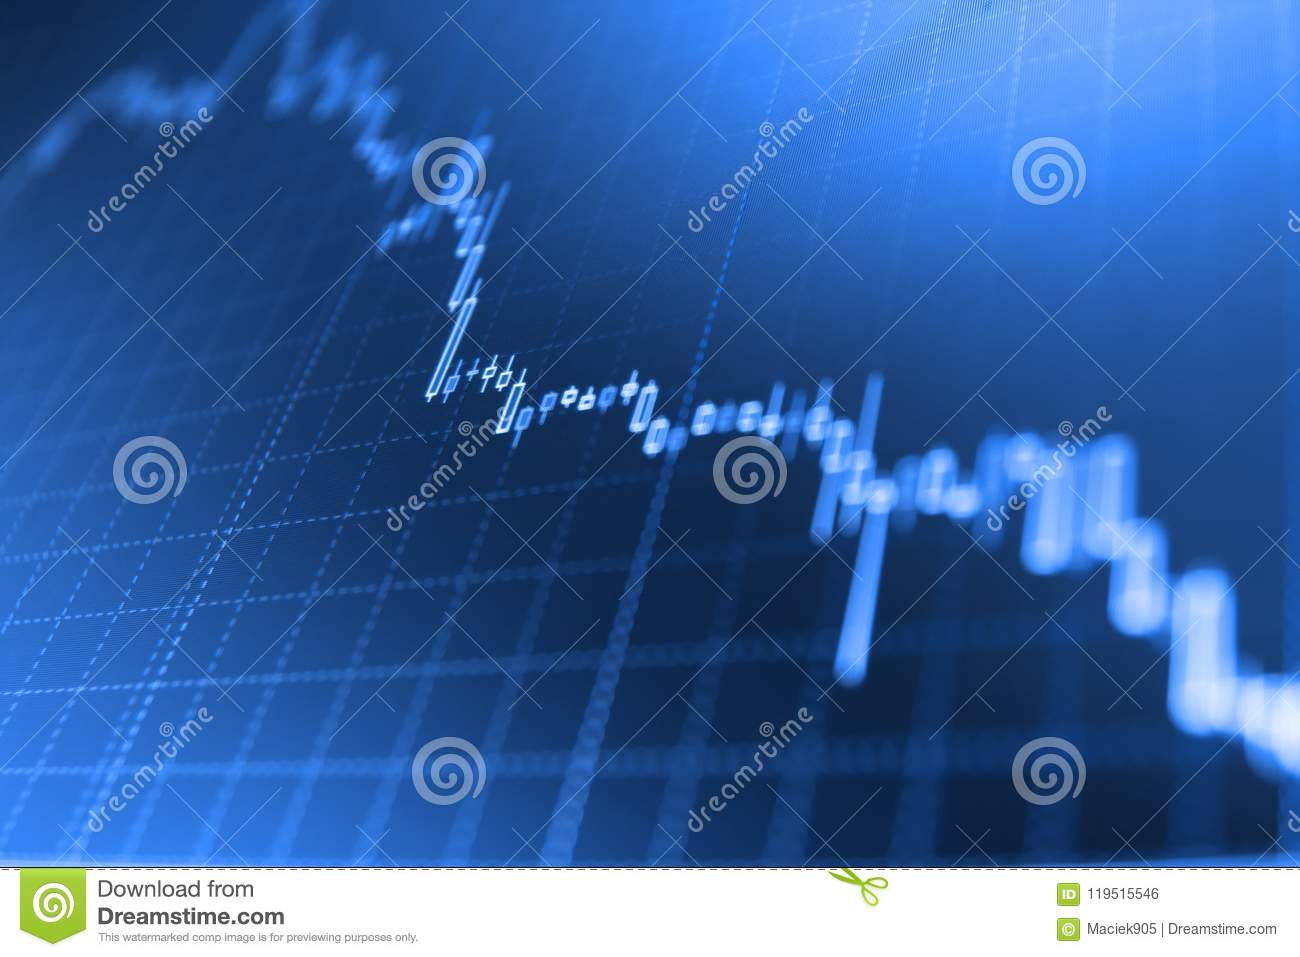 Candle stick graph chart of stock market investment trading.